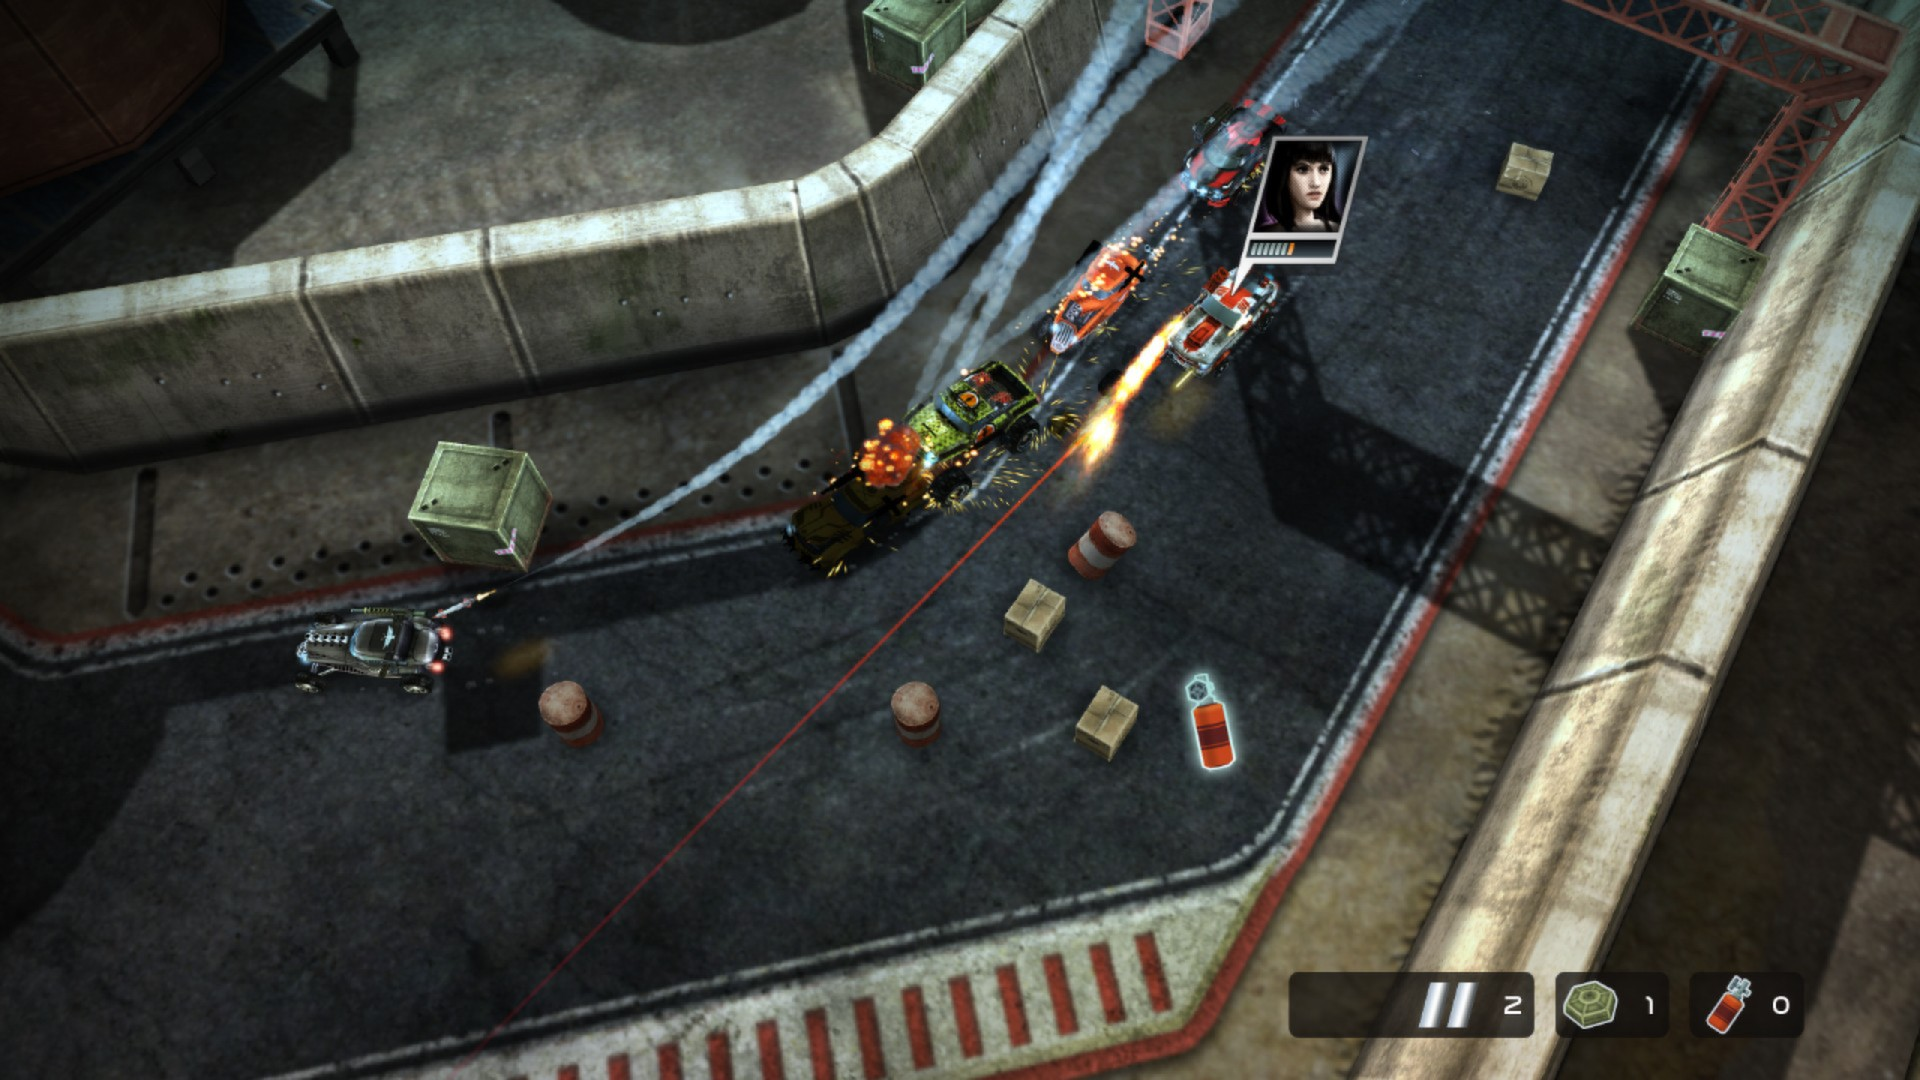 Download Death Rally Full PC Game - photo#36